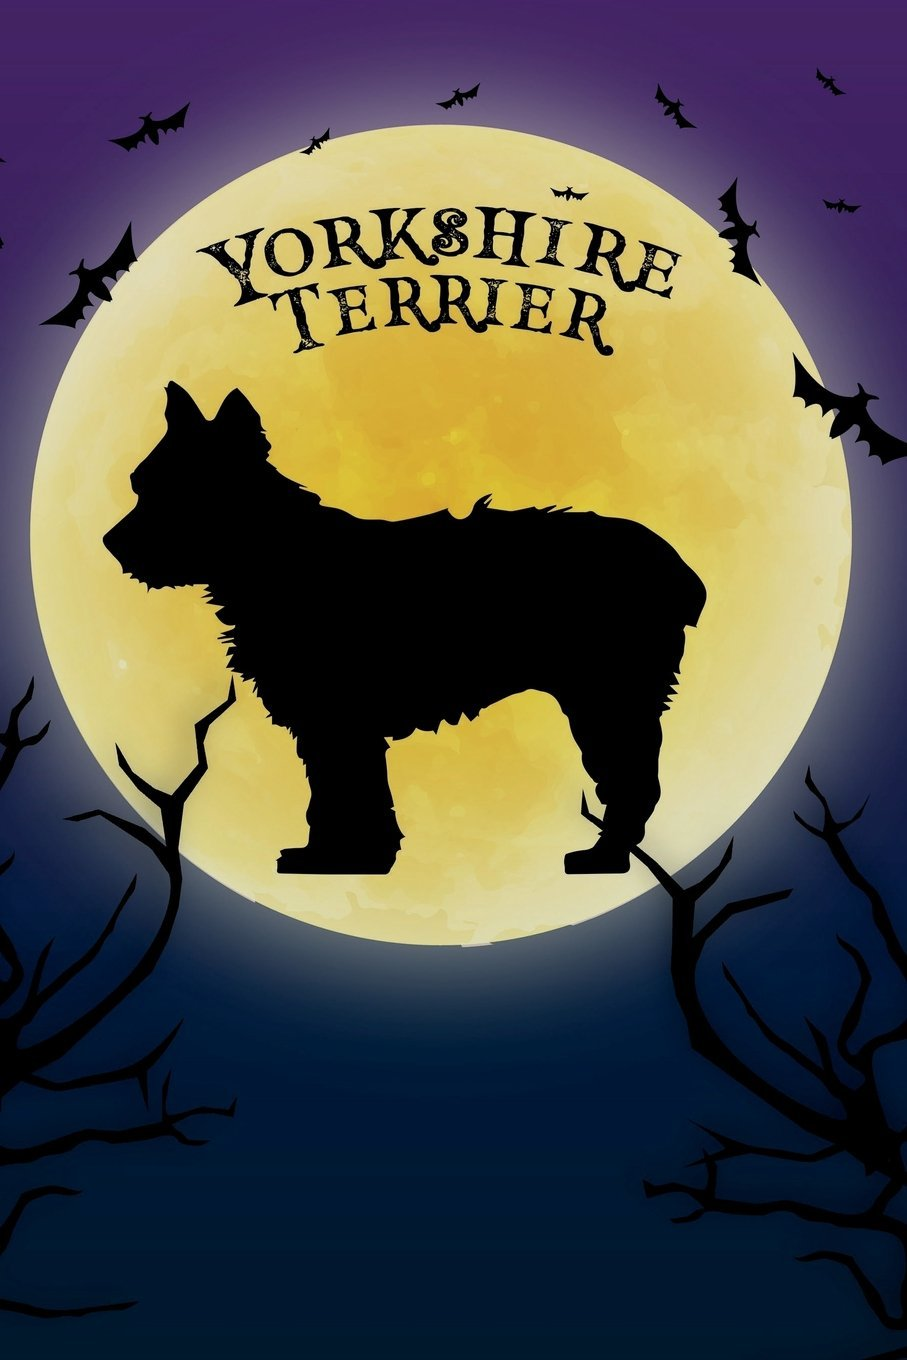 Yorkshire Terrier Notebook Halloween Journal: Spooky Halloween Themed Blank Lined Composition Book/Diary/Journal For Yorkie Dog Lovers, 6 x 9, 130 Pages, Full Moon, Bats, Scary Trees pdf